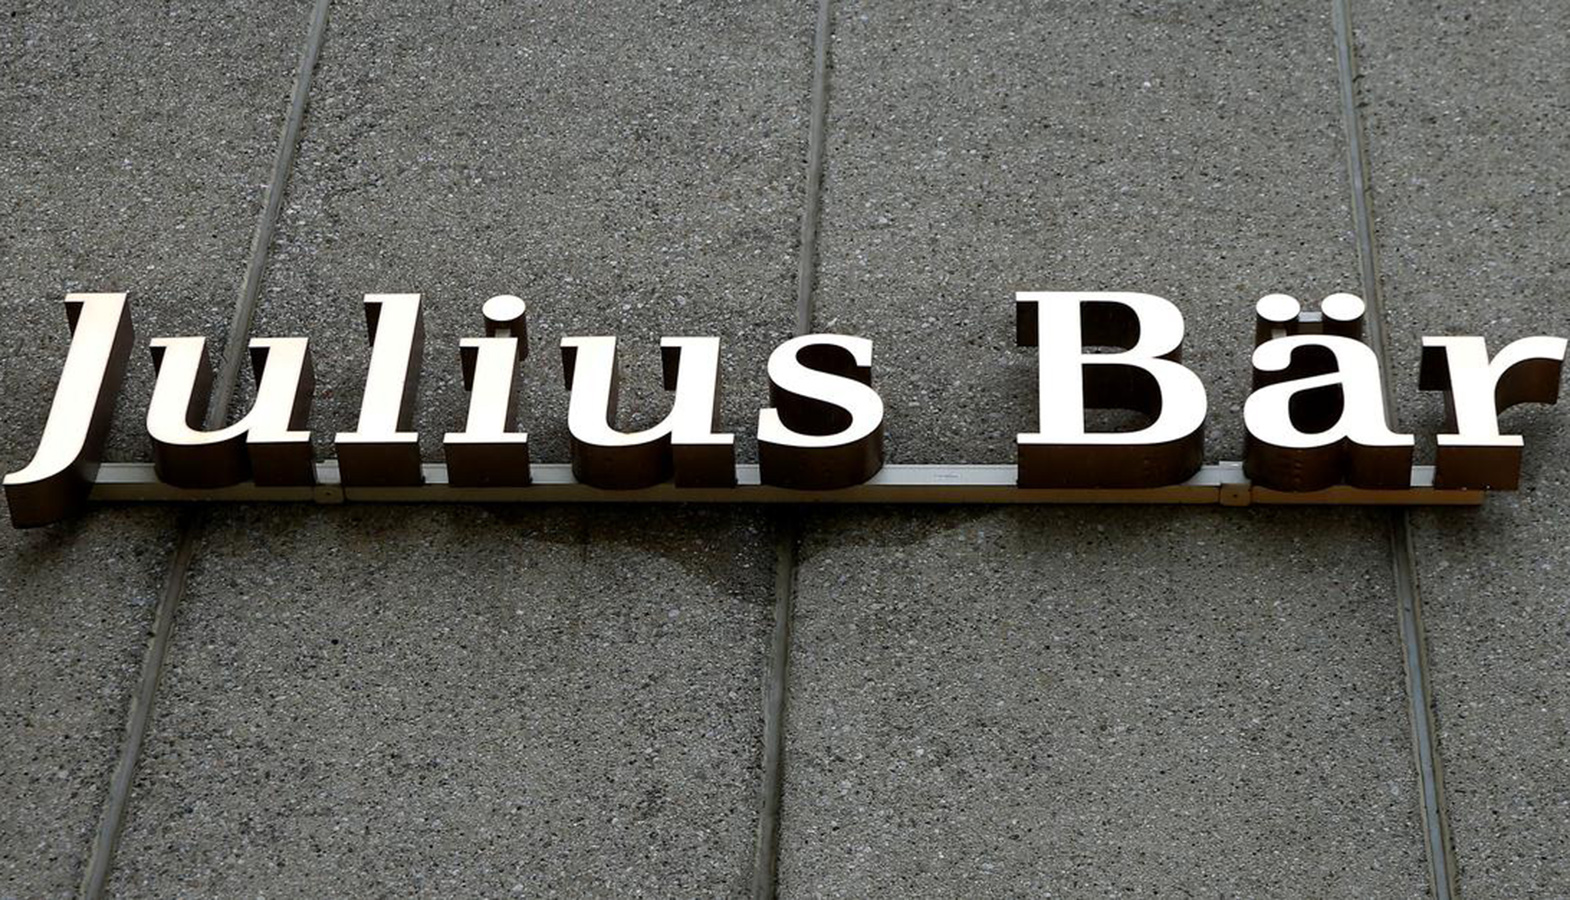 Swiss Bank Julius Baer Will Pay The US $79.7 Million In Fines In The FIFA Corruption Case